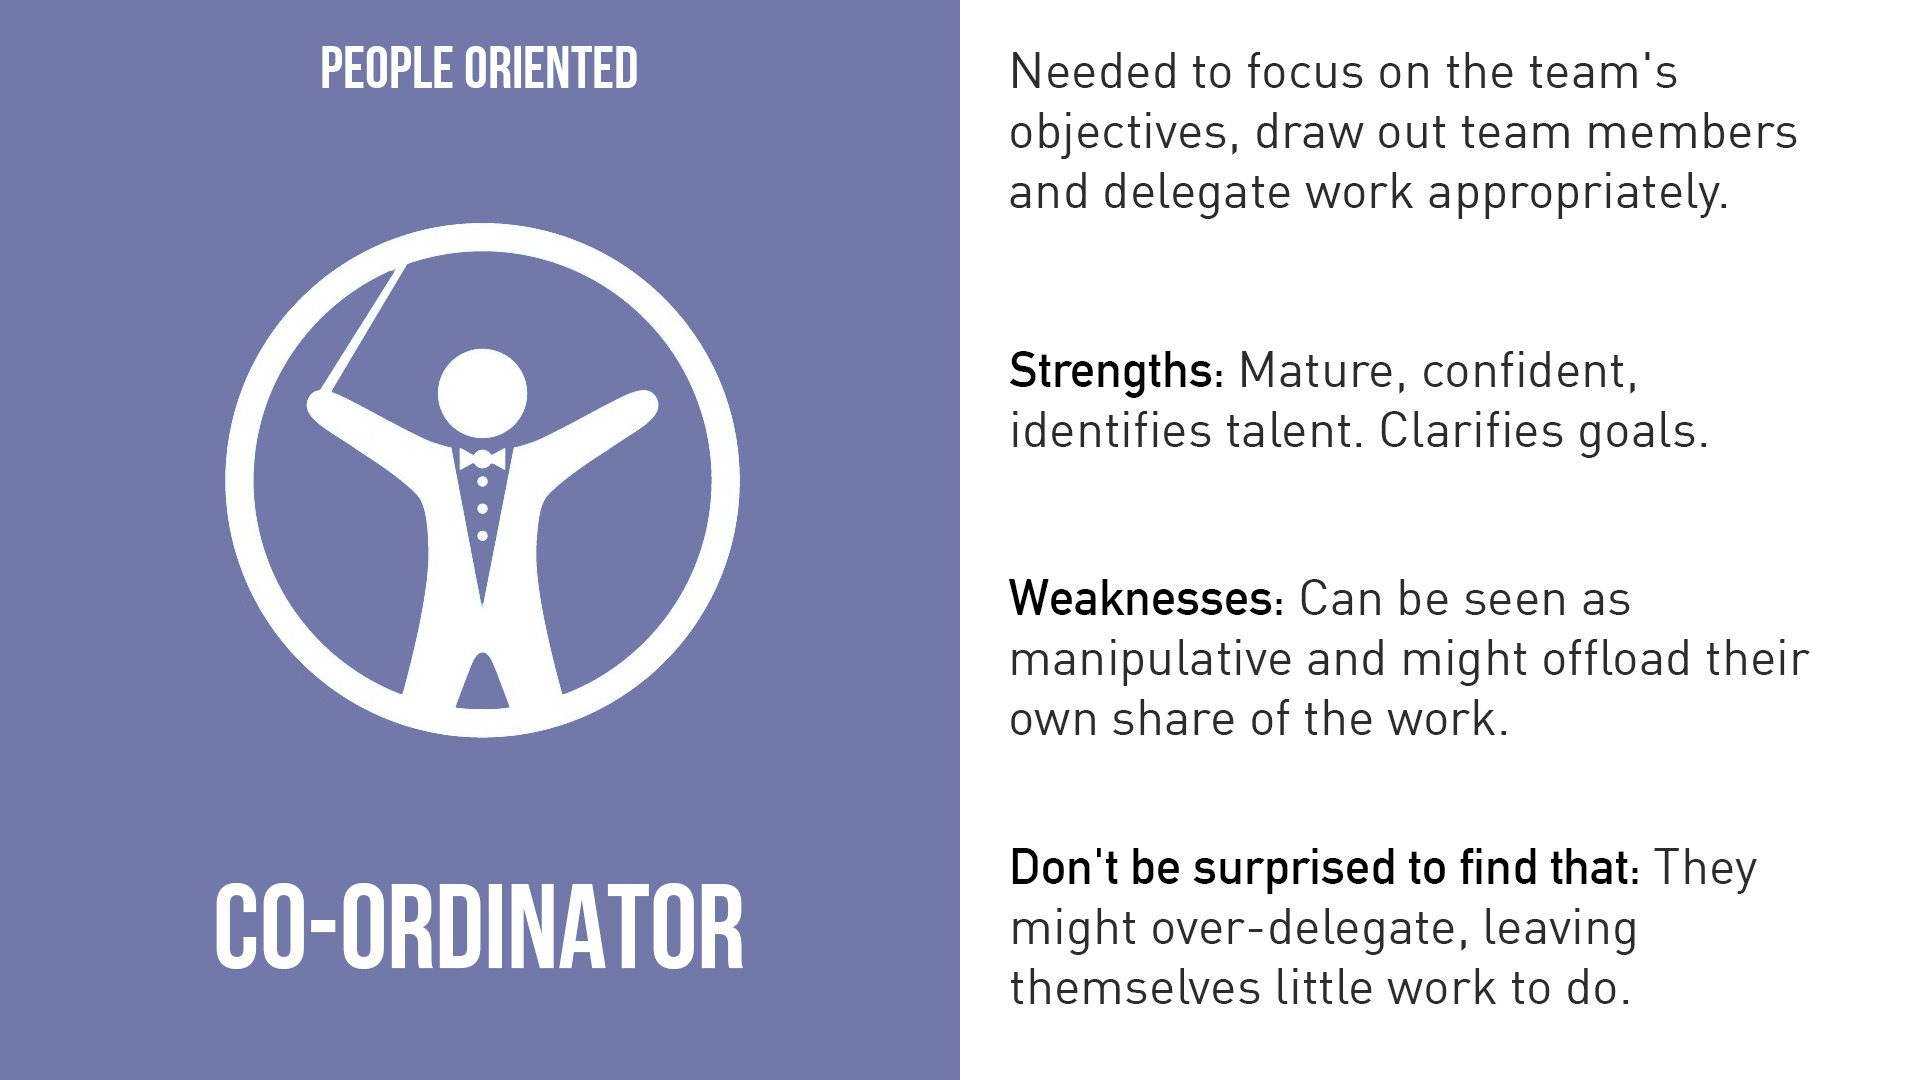 Coordinators are the ones who take on the traditional team-leader role and have also been referred to as the chairmen. They guide the team to what they perceive are the objectives. They are often excellent listeners and they are naturally able to recognize the value that each team member brings to the table. They are calm and good-natured, and delegate tasks very effectively. Their potential weaknesses are that they may delegate away too much personal responsibility, and may tend to be manipulative.